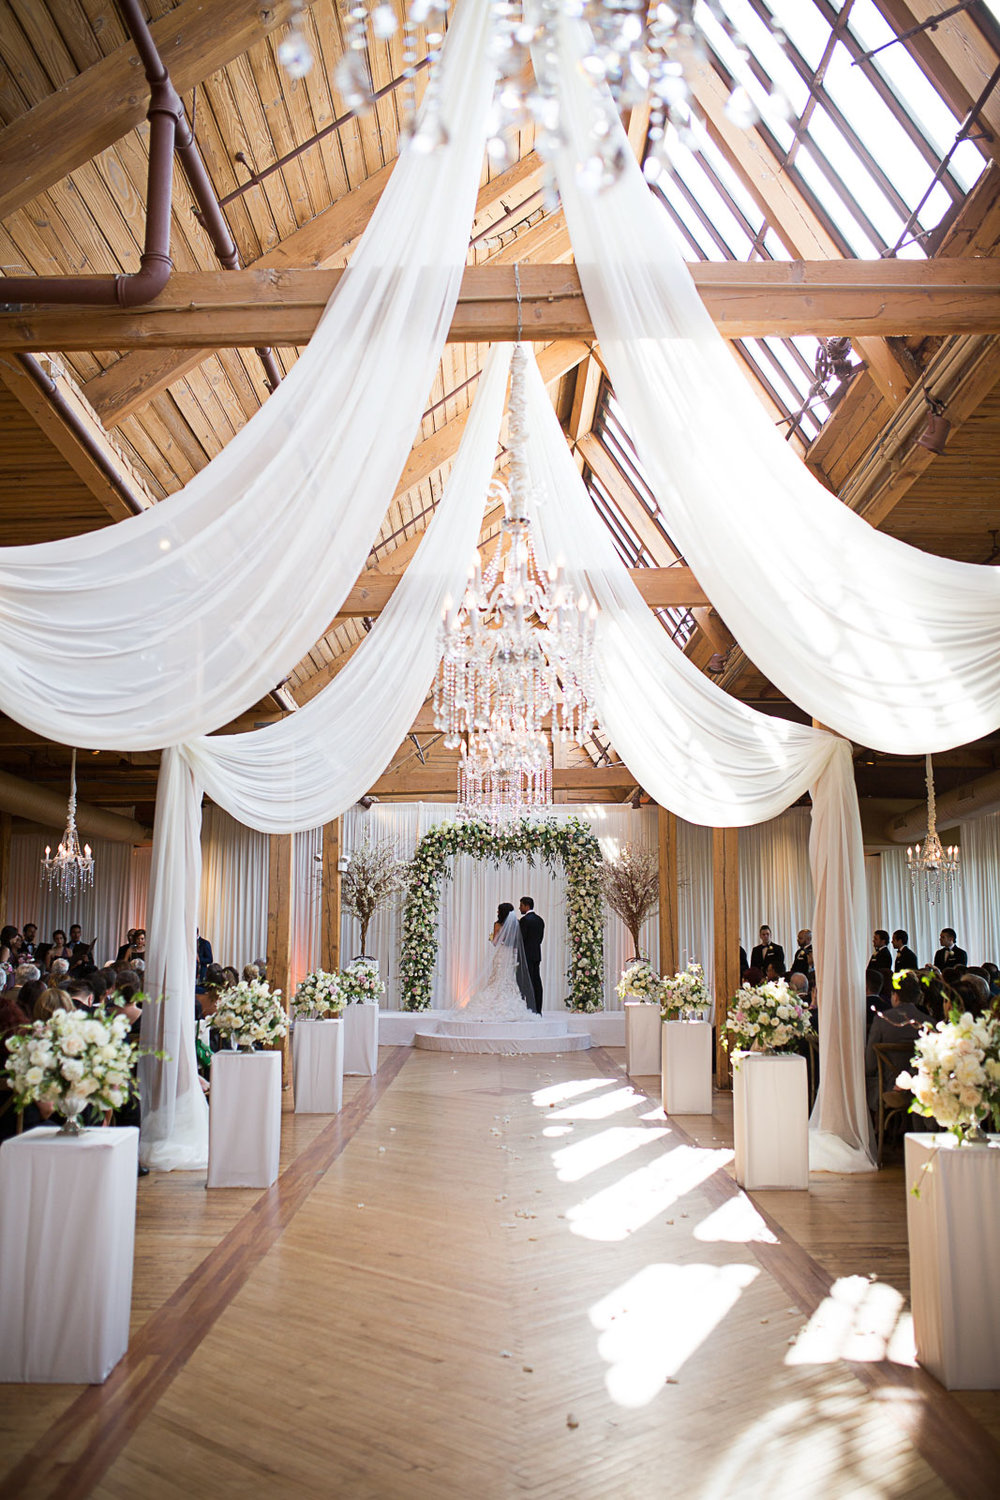 Wrap it Up parties is one of the best wedding planners in Chicago